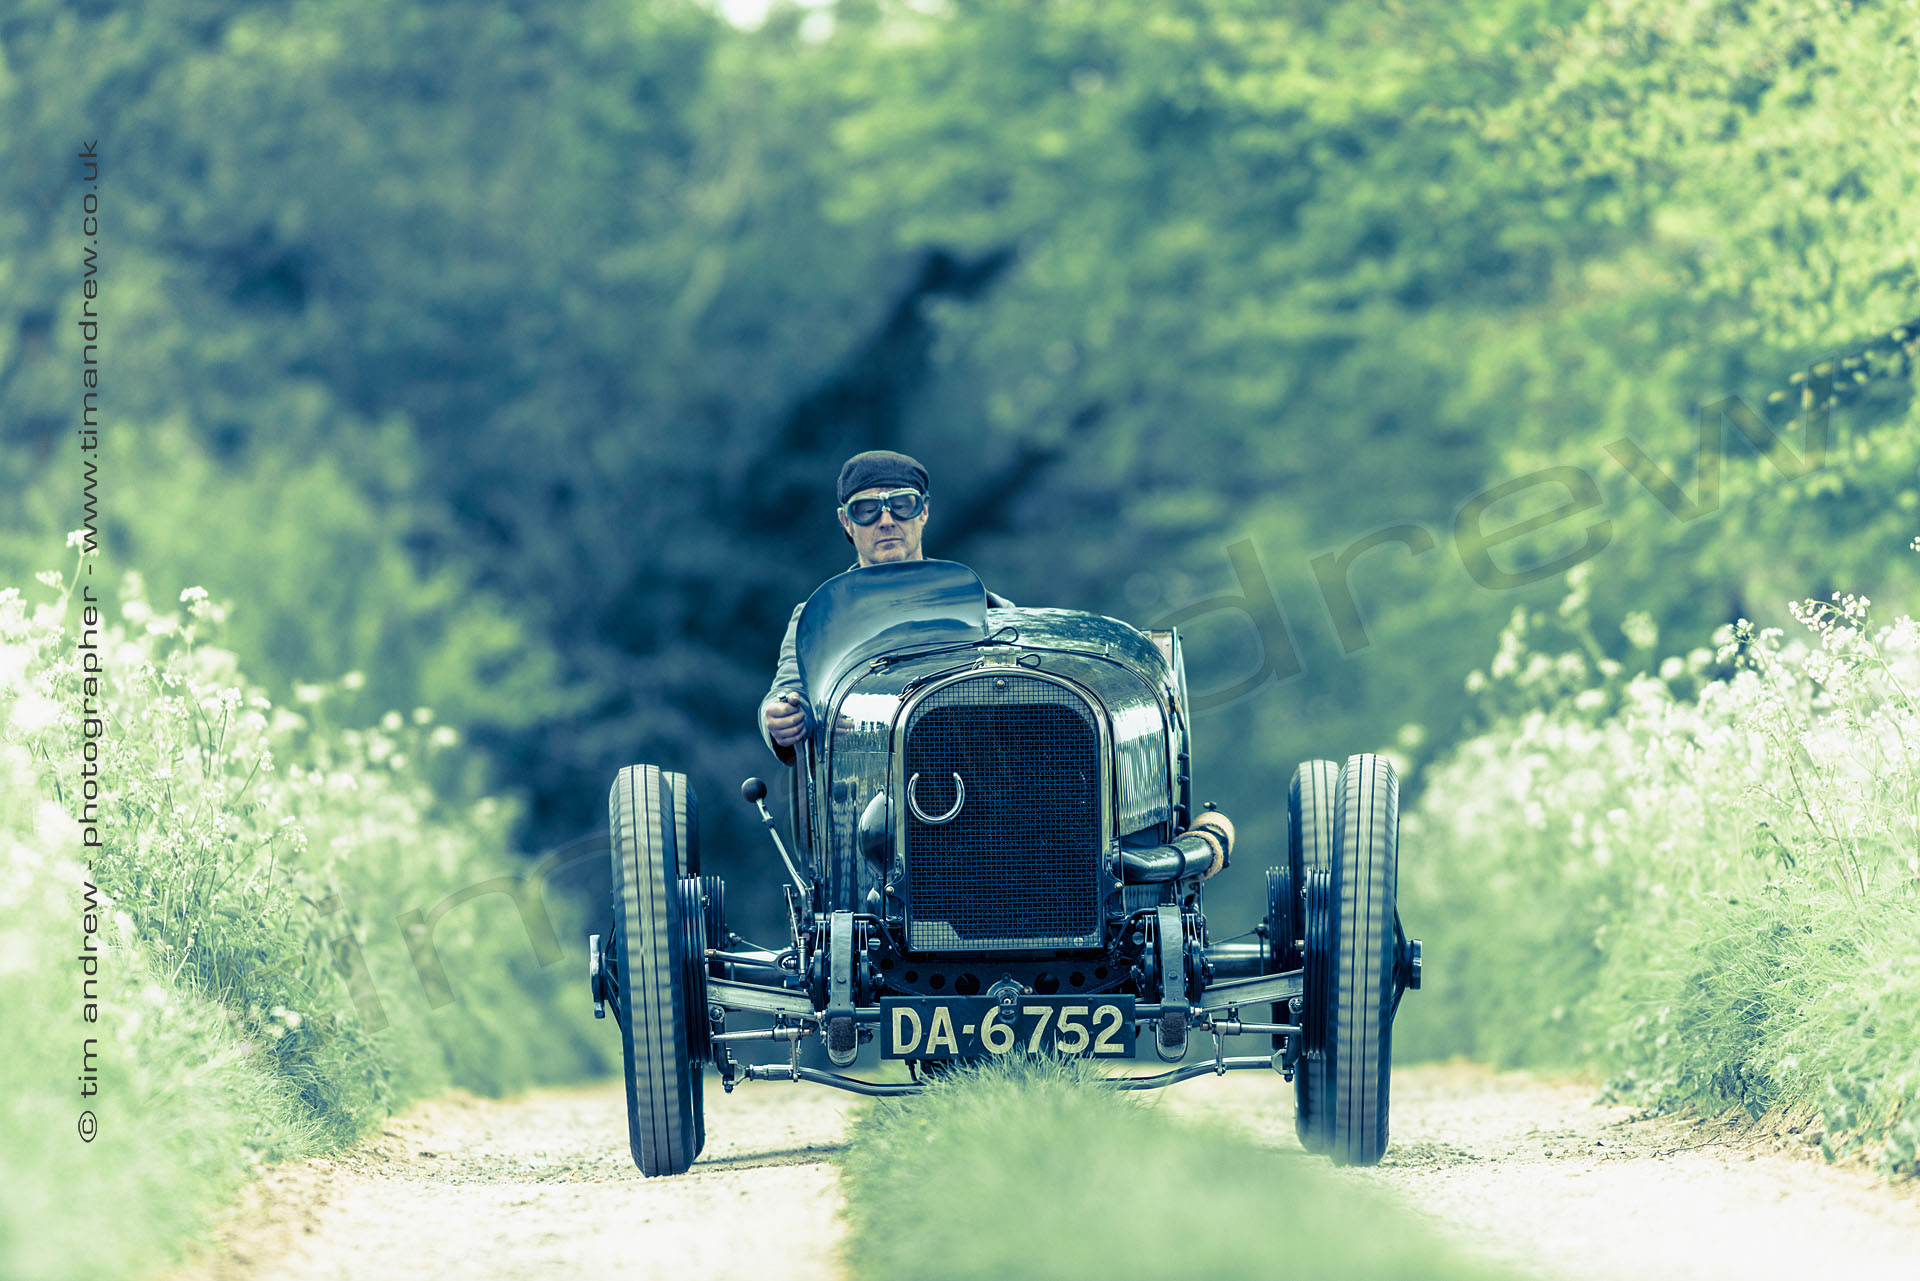 1922 Sunbeam TT in the Cotswolds